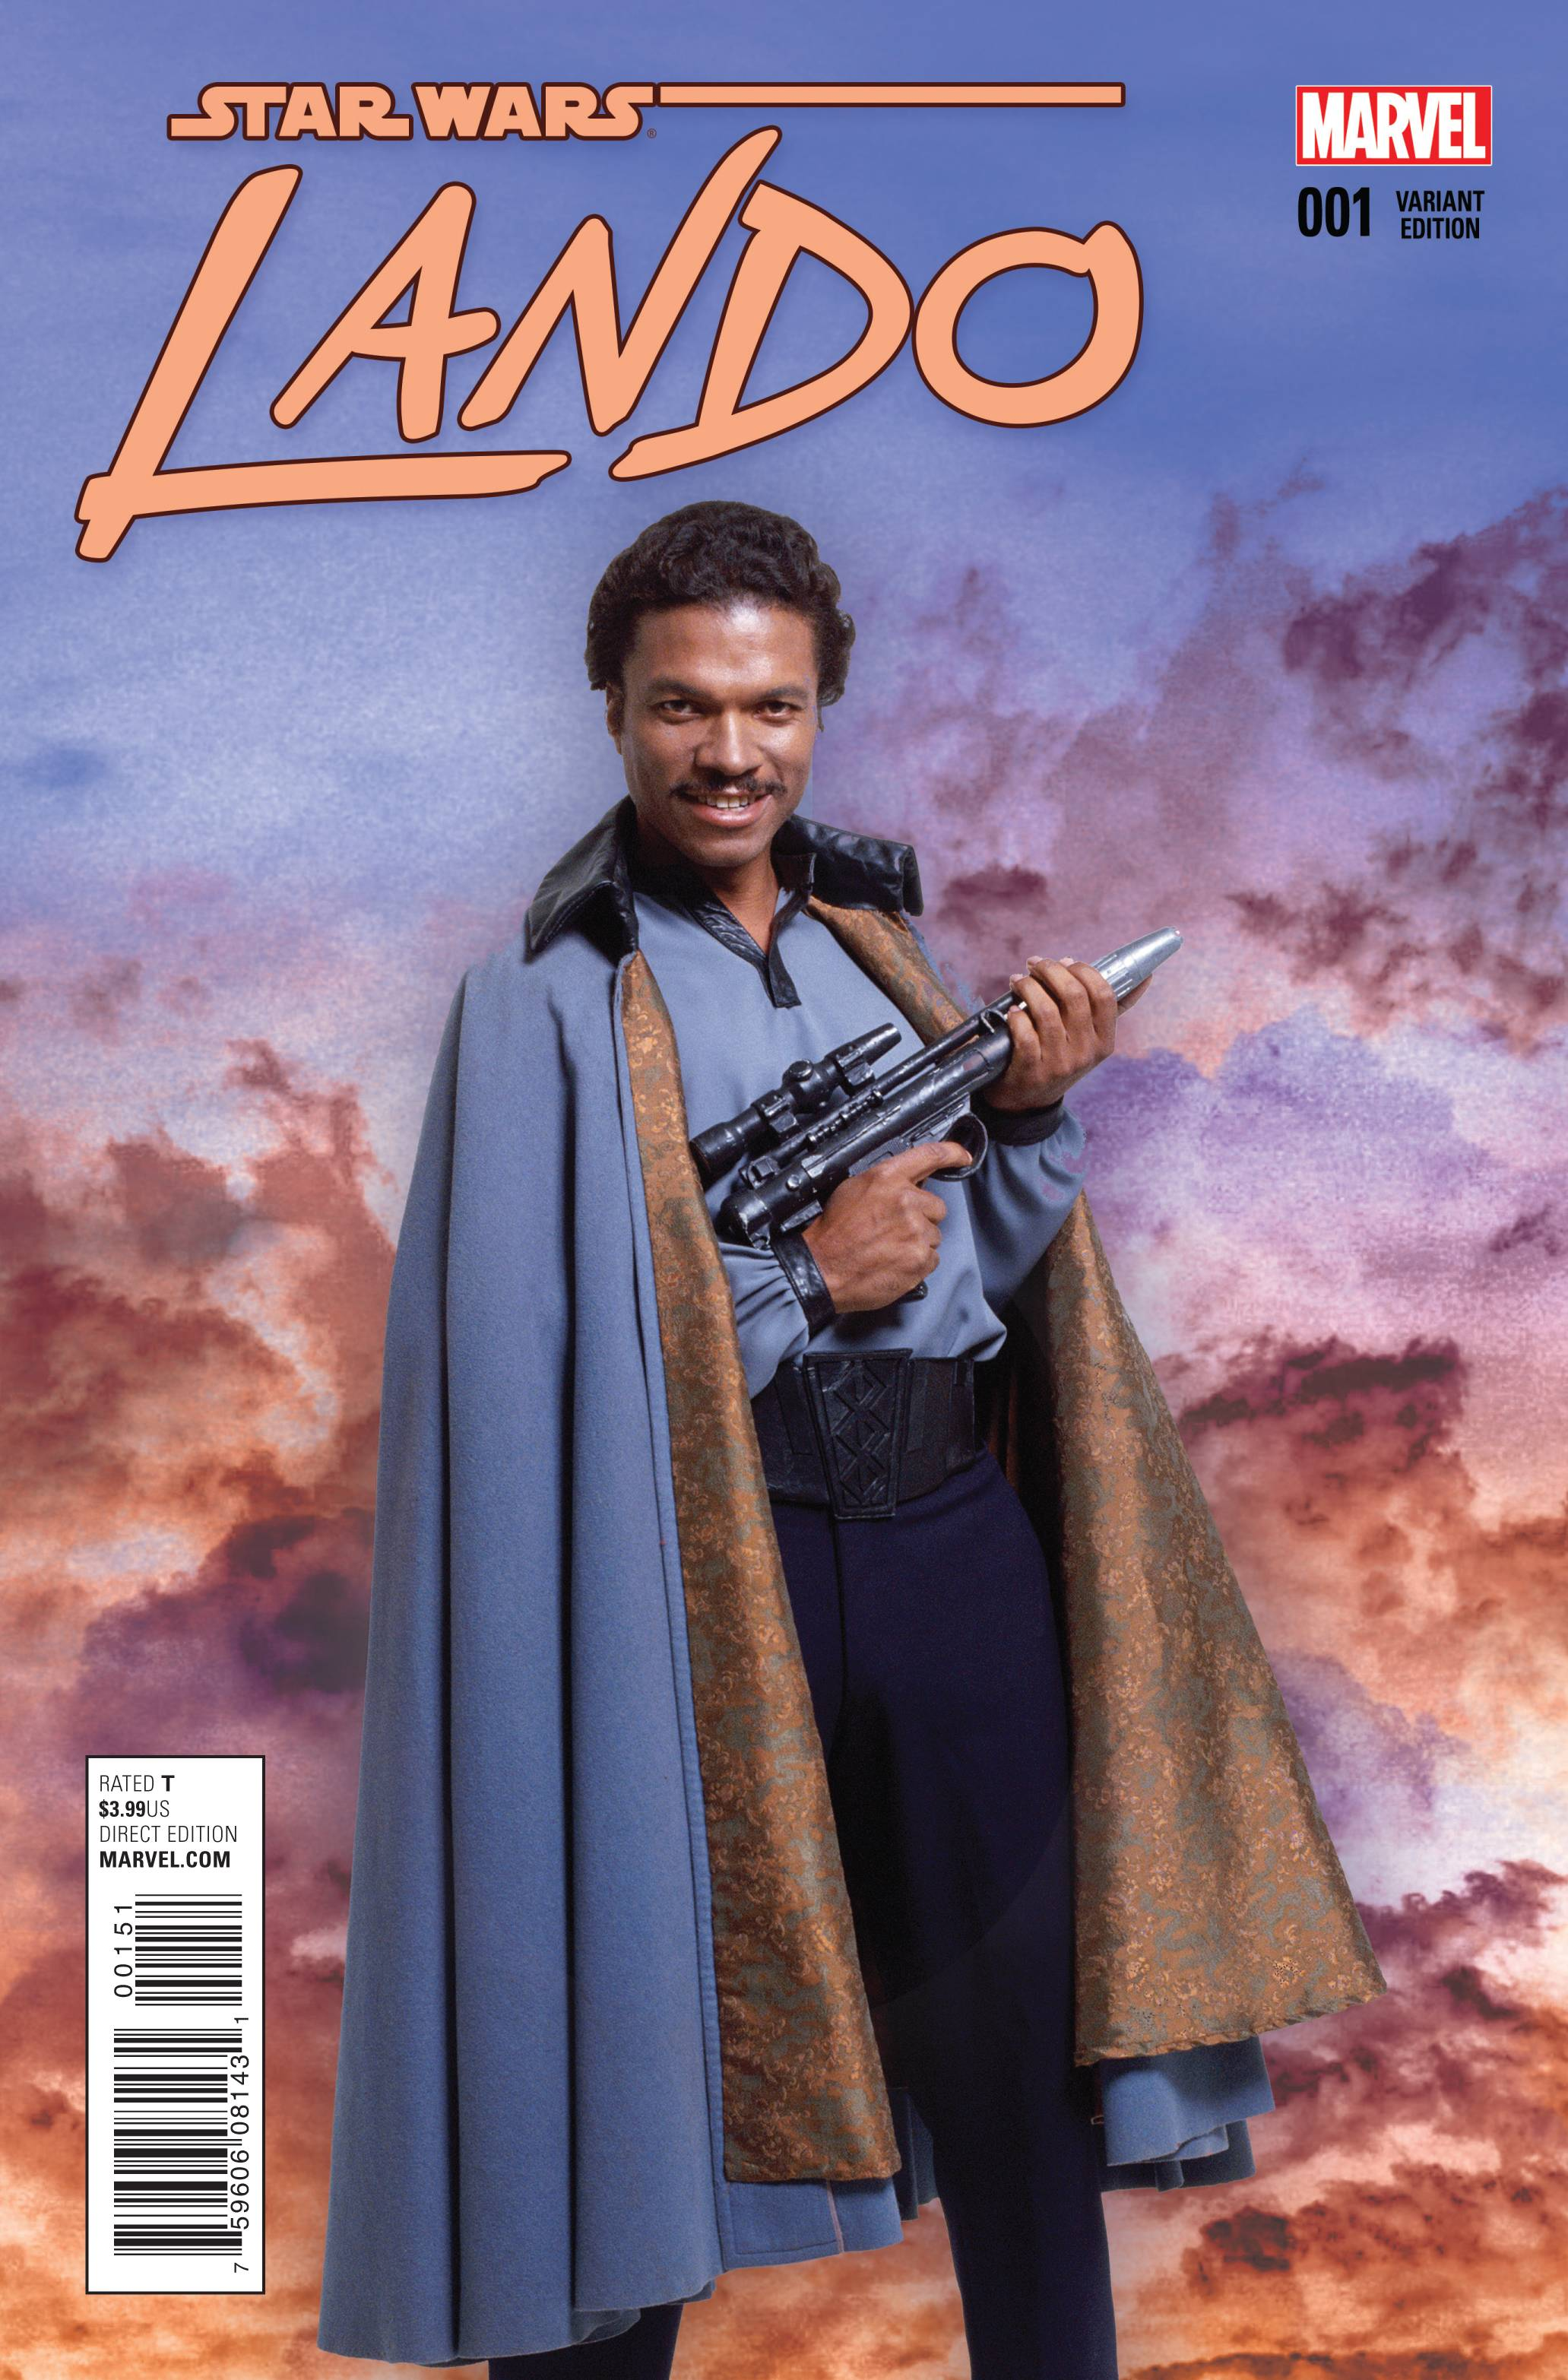 Star Wars Lando #1 Movie Variant